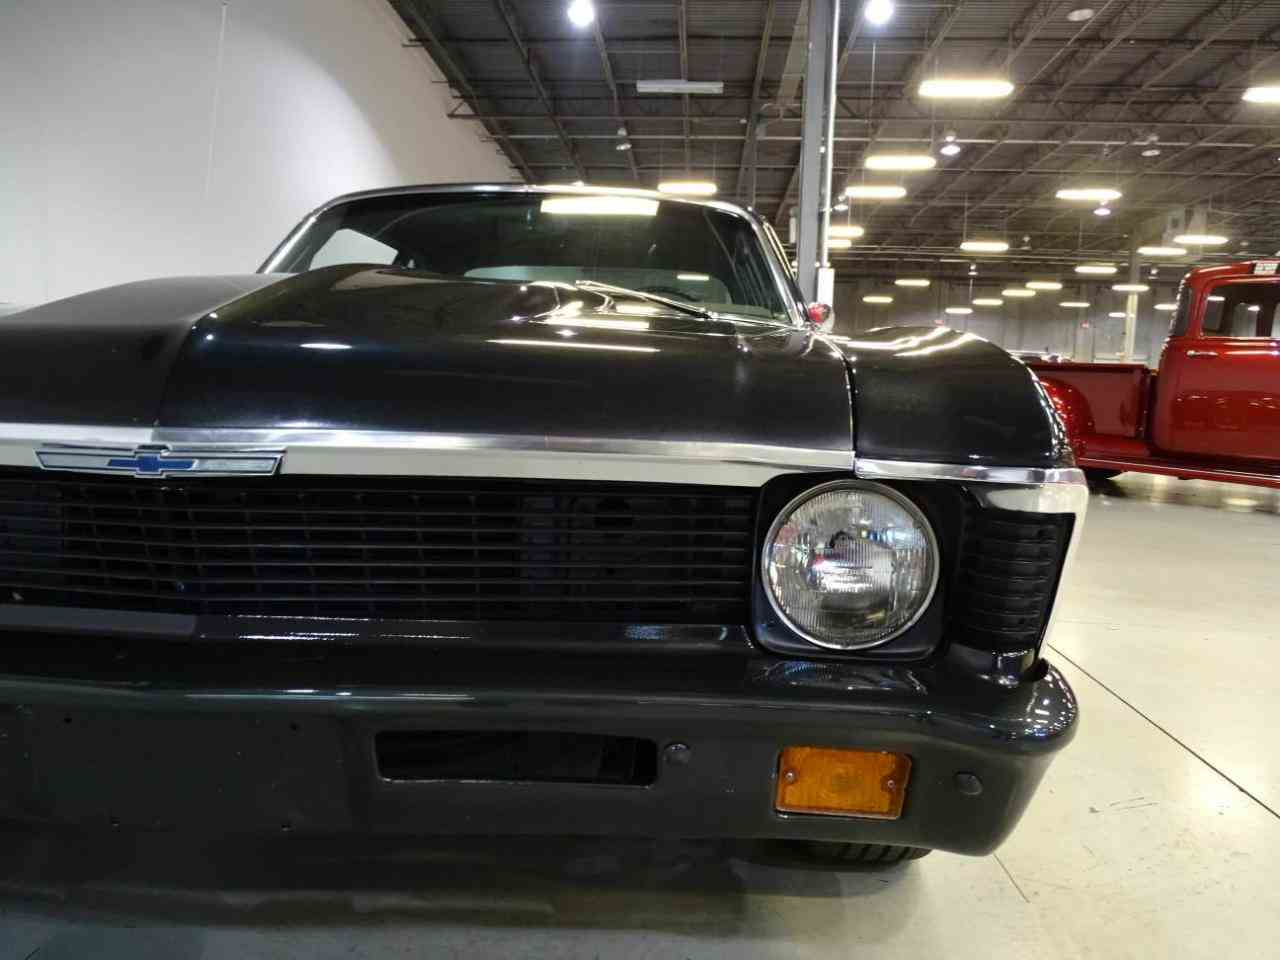 Large Picture of Classic '72 Chevrolet Nova located in Florida - $22,595.00 Offered by Gateway Classic Cars - Orlando - KJ1N